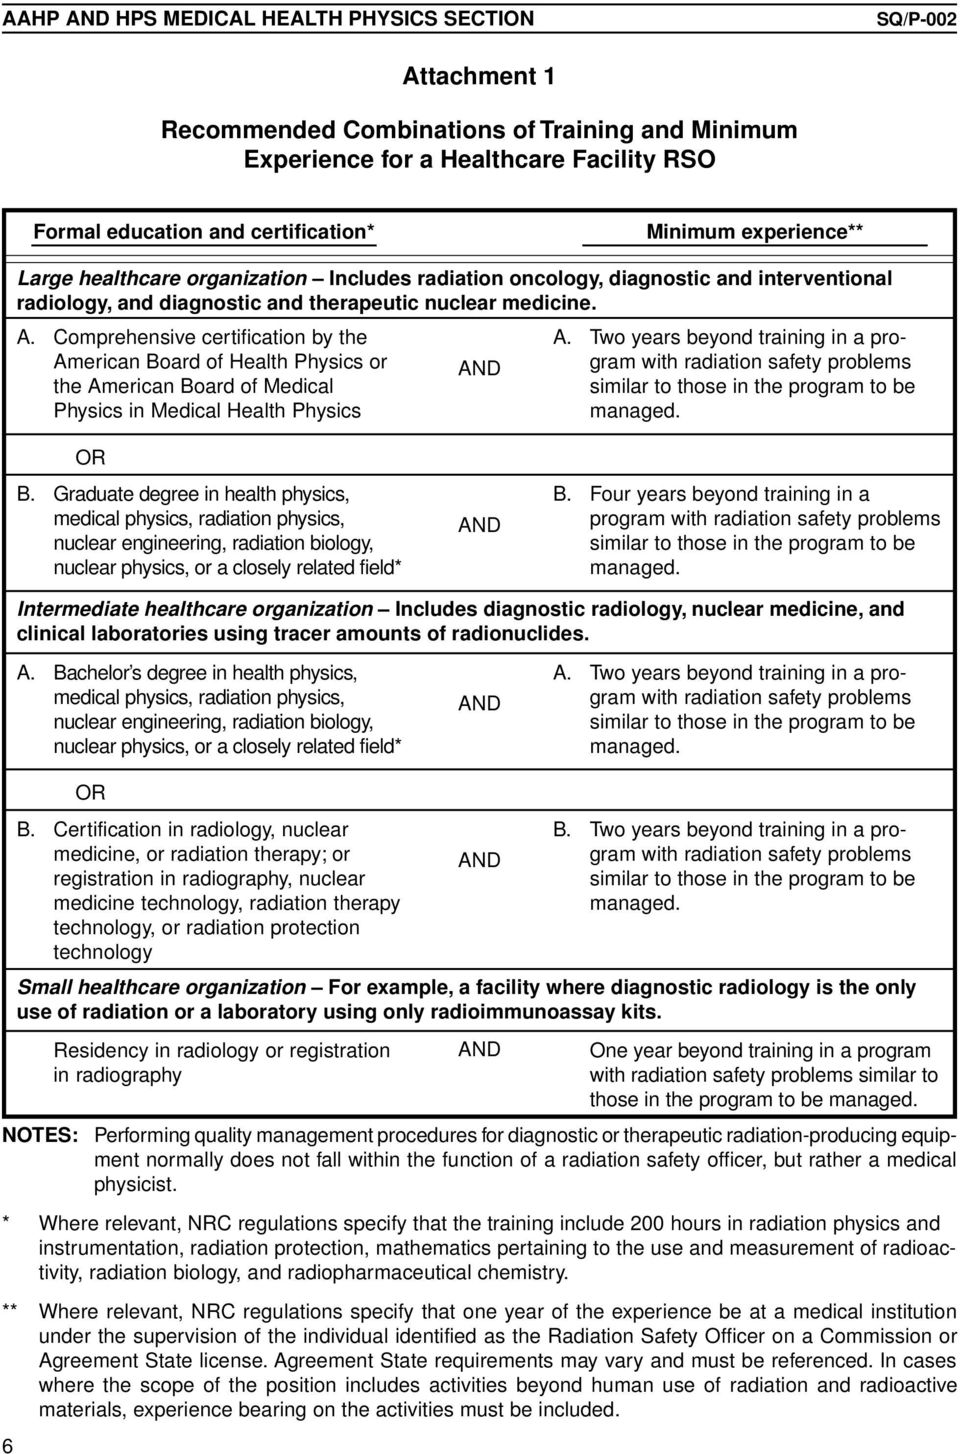 Qualifications for Healthcare Facility Radiation Safety